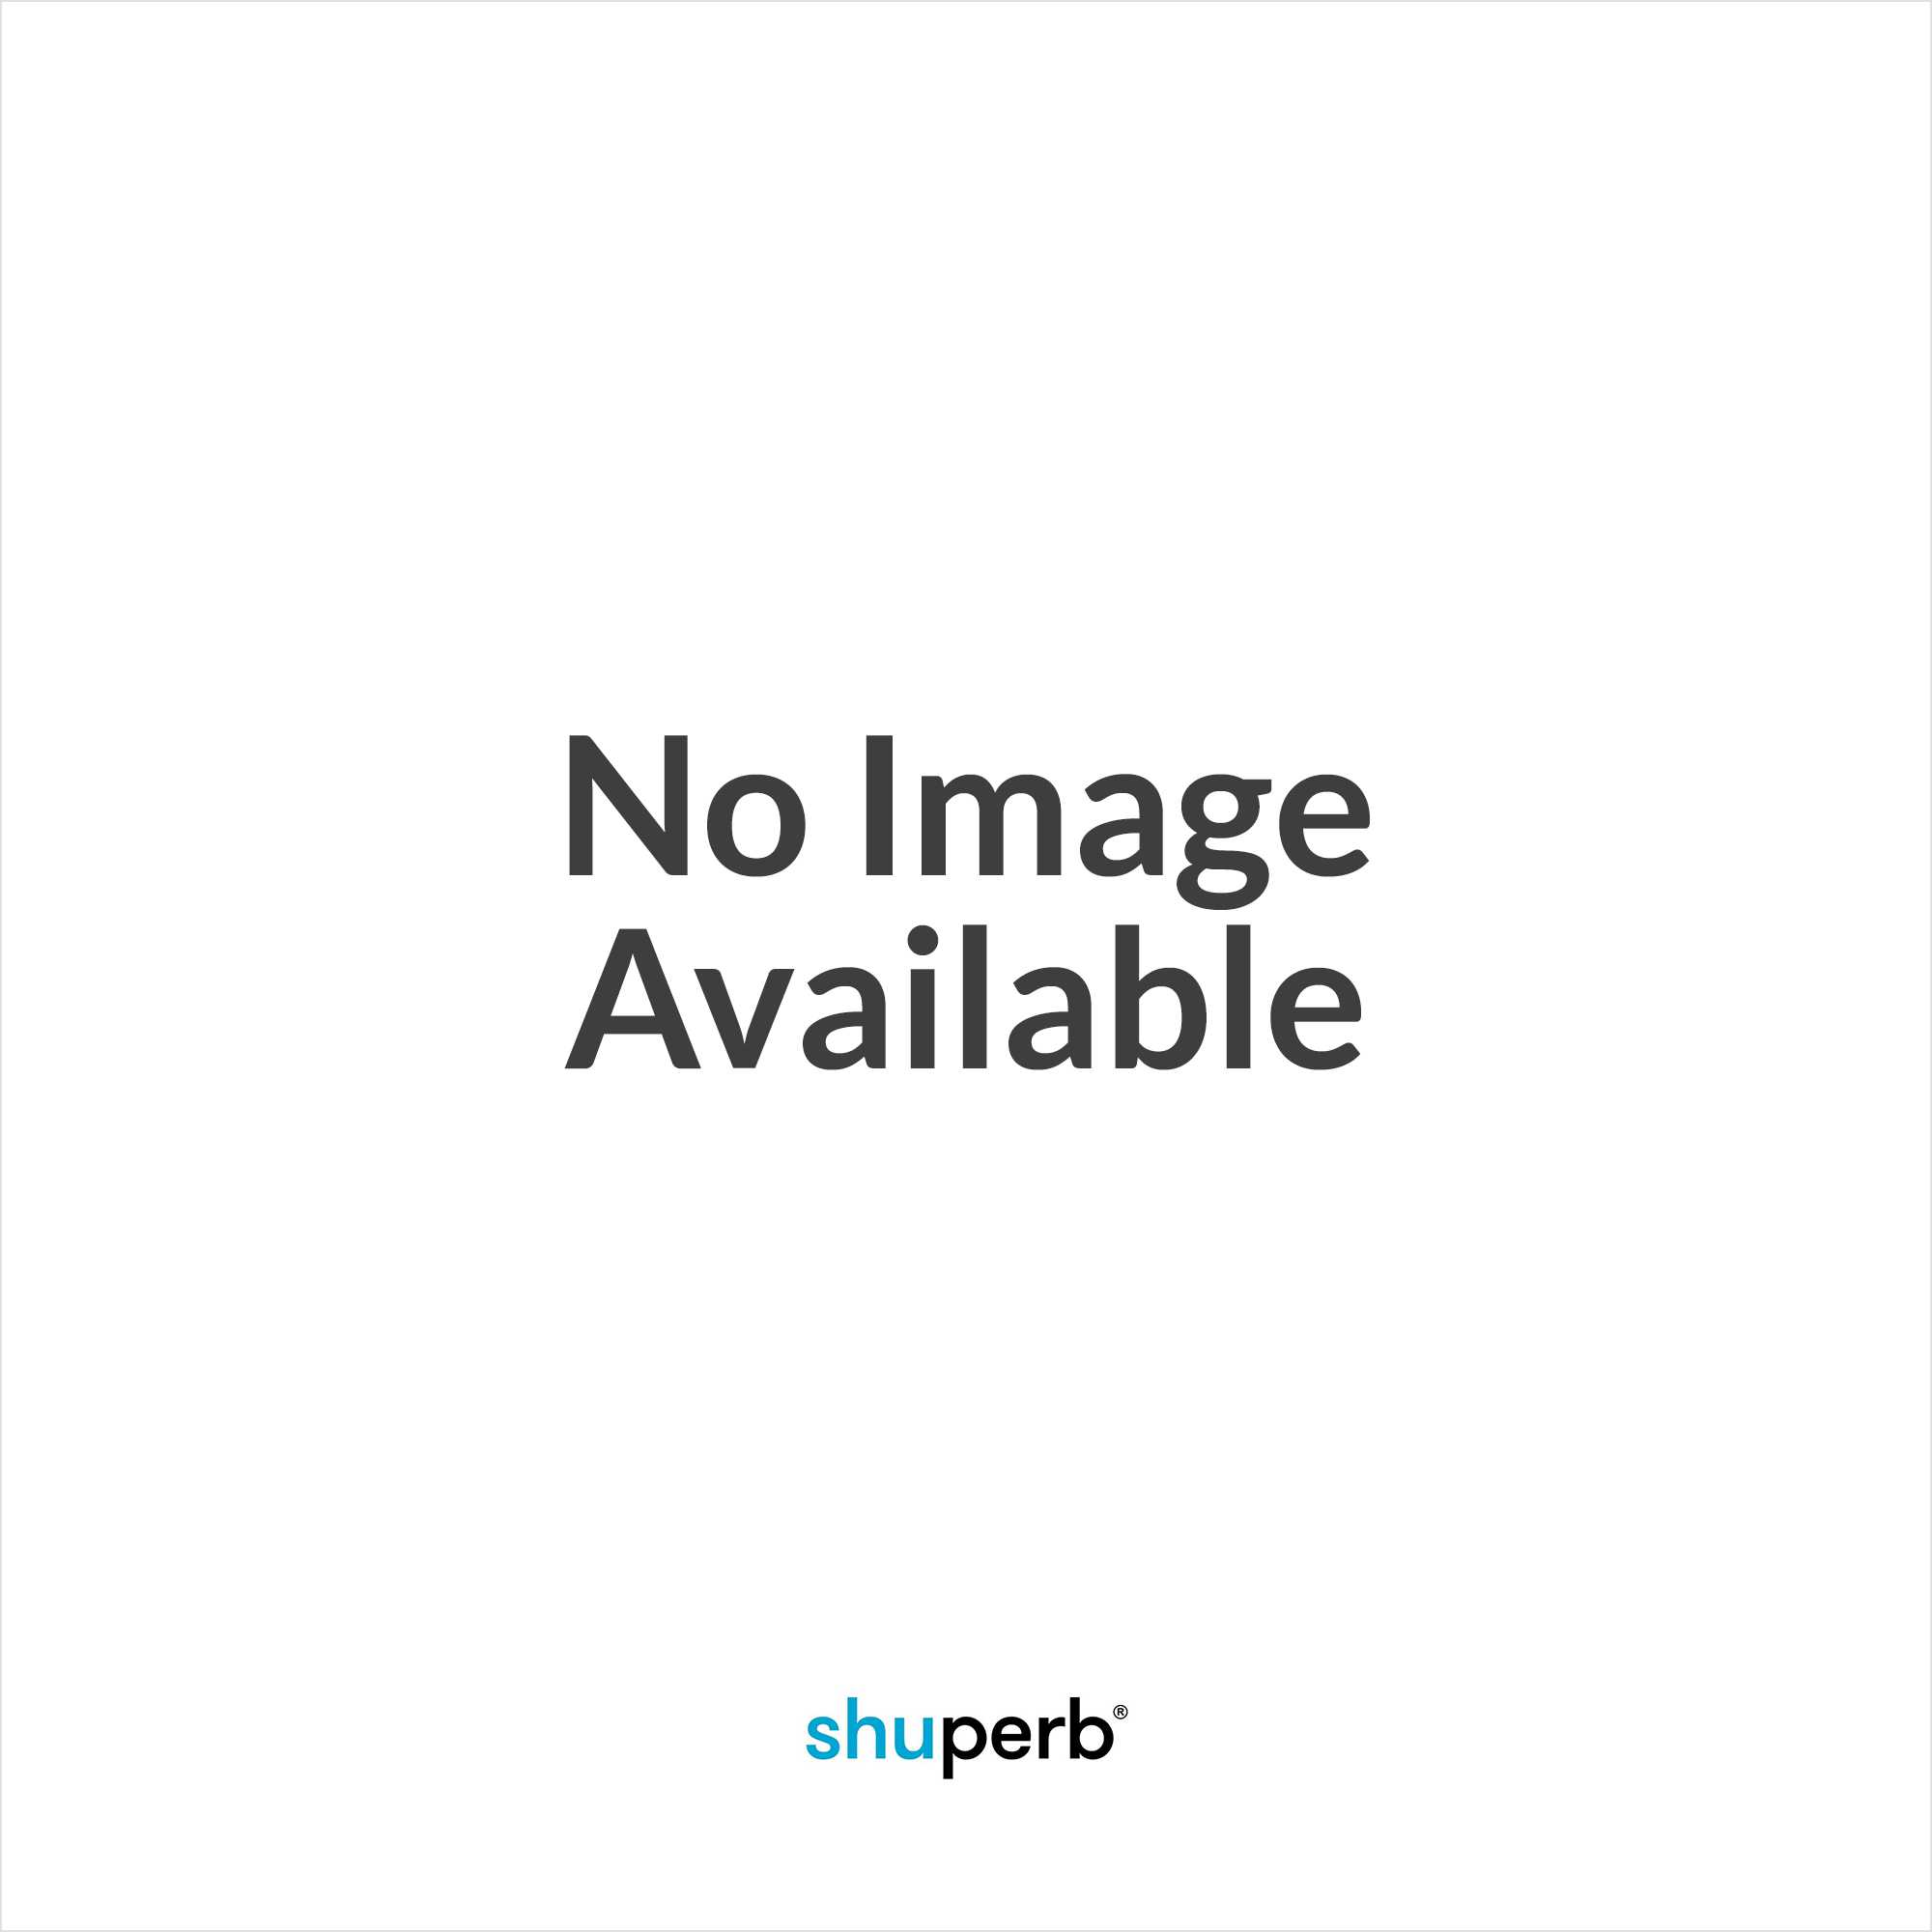 Chelsea Boots In Brown Suede - Brown Silver Street London 8WOfk